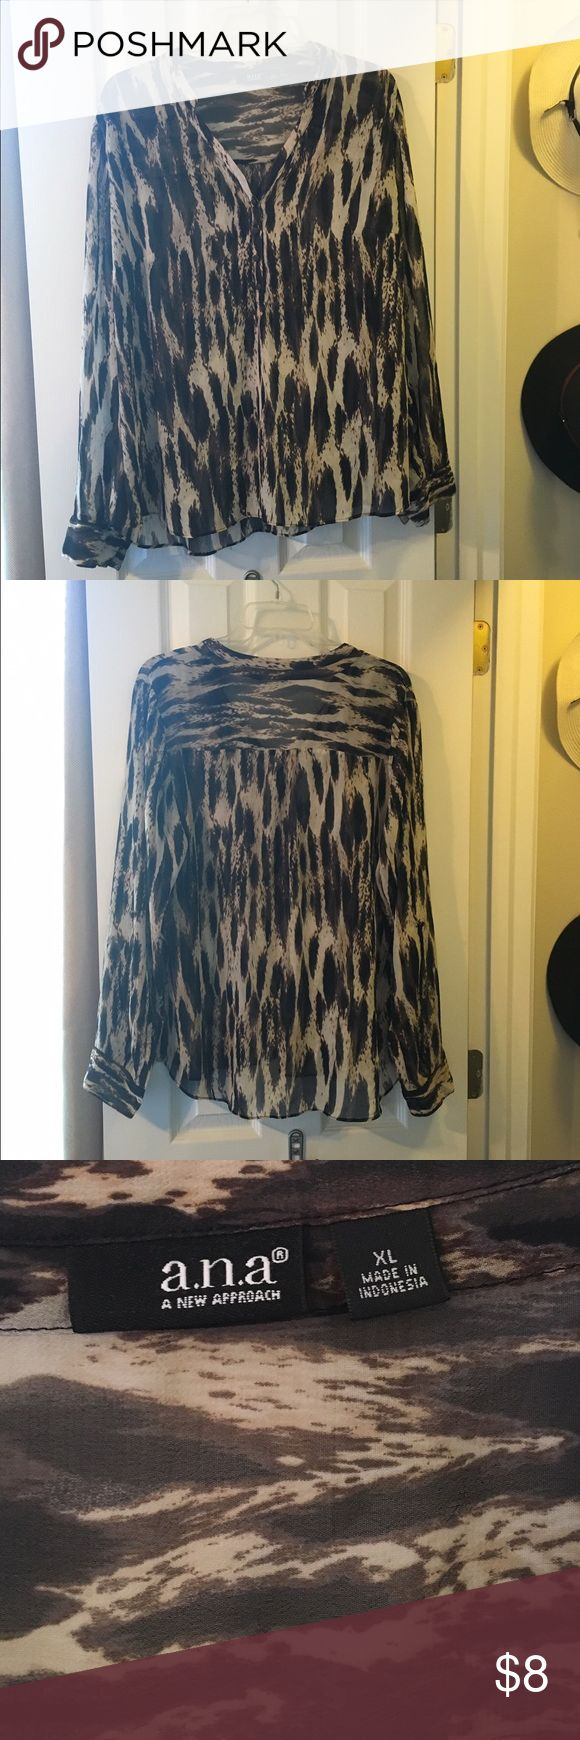 Animal print blouse Worn only a few times. Perfect condition. a.n.a Tops Blouses